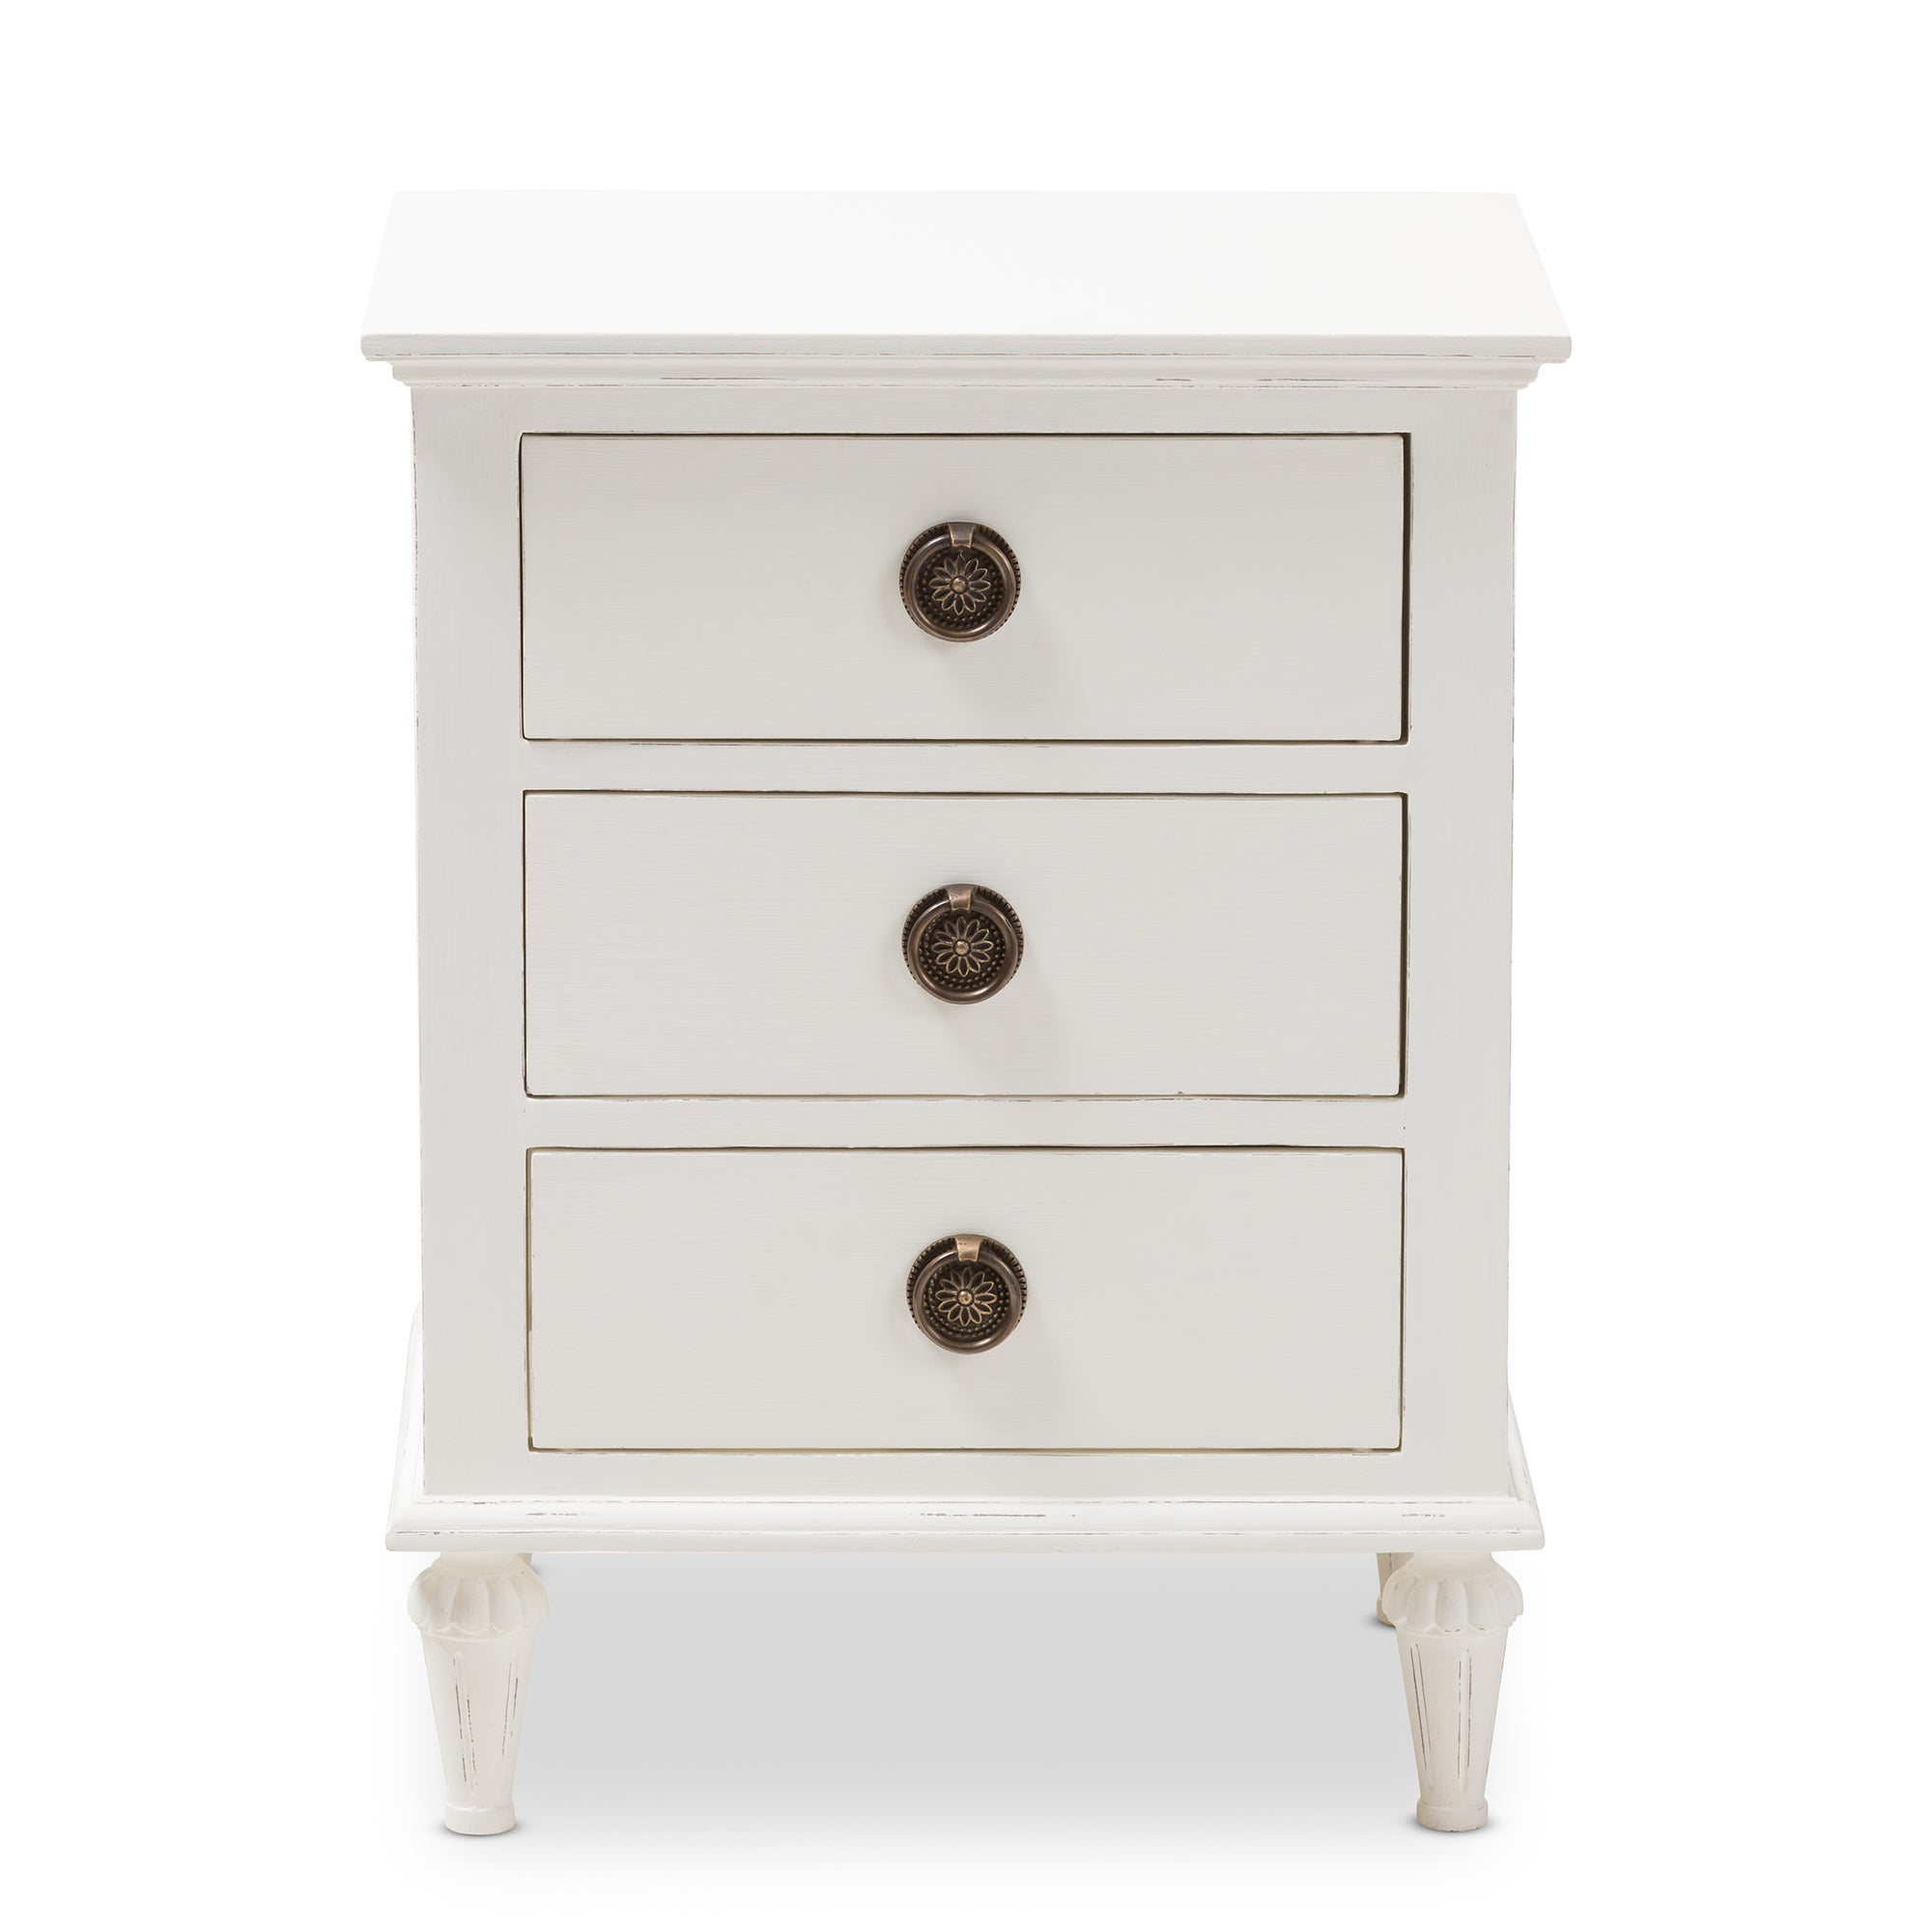 free by cbdd garden chest today drawer shipping nightstand product overstock inspire home white ediline q classic